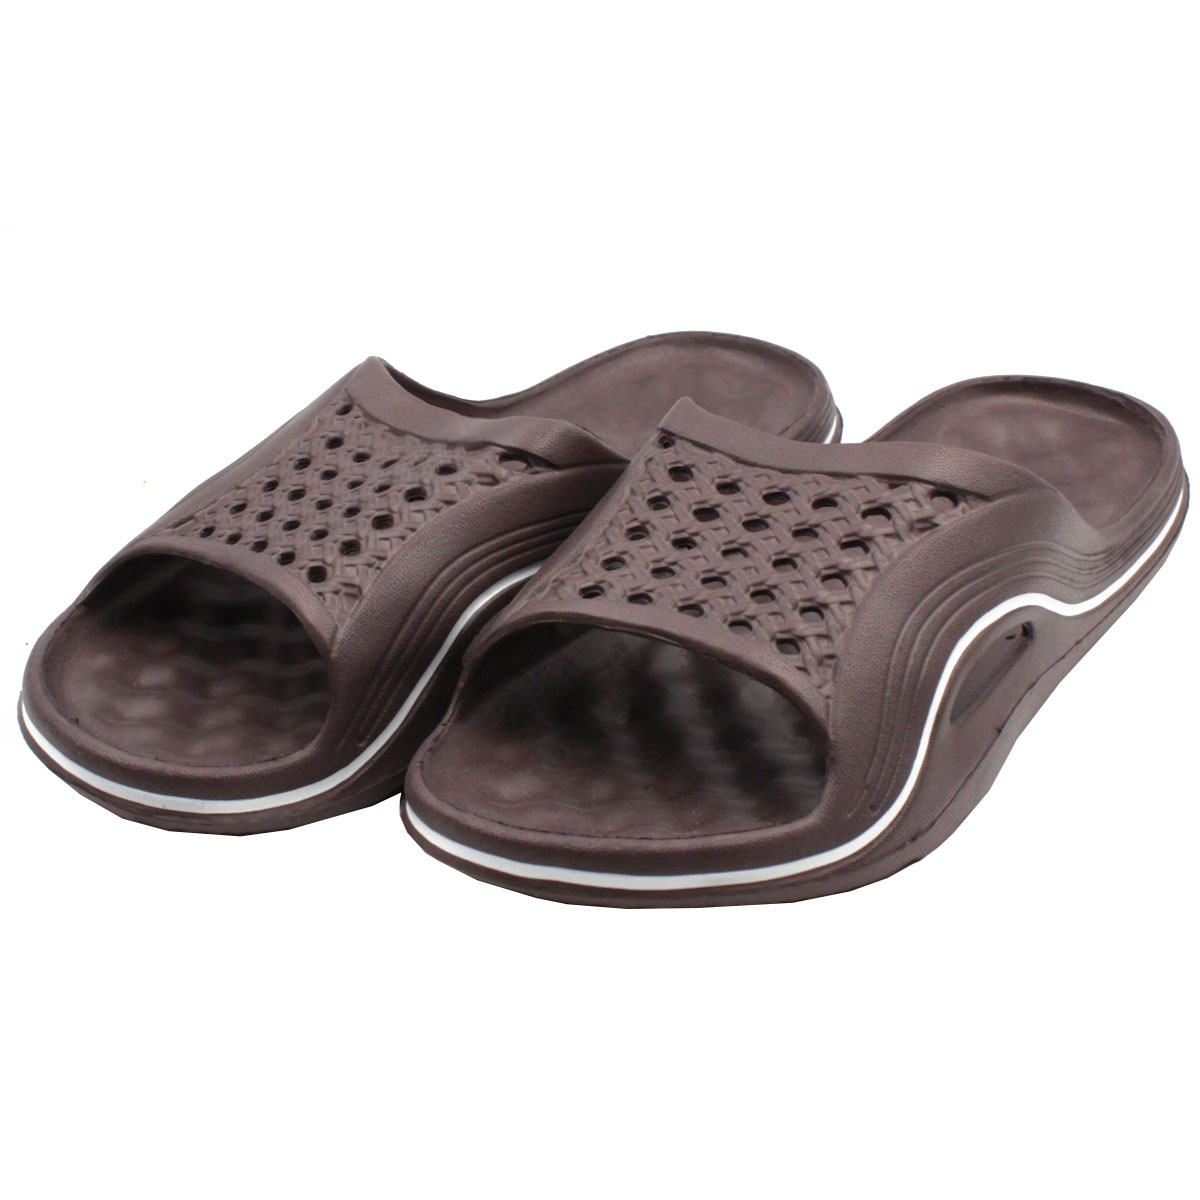 92924415e Womens Cushion Slip On Sandals Slides House Shoes Flip Flop Water ...